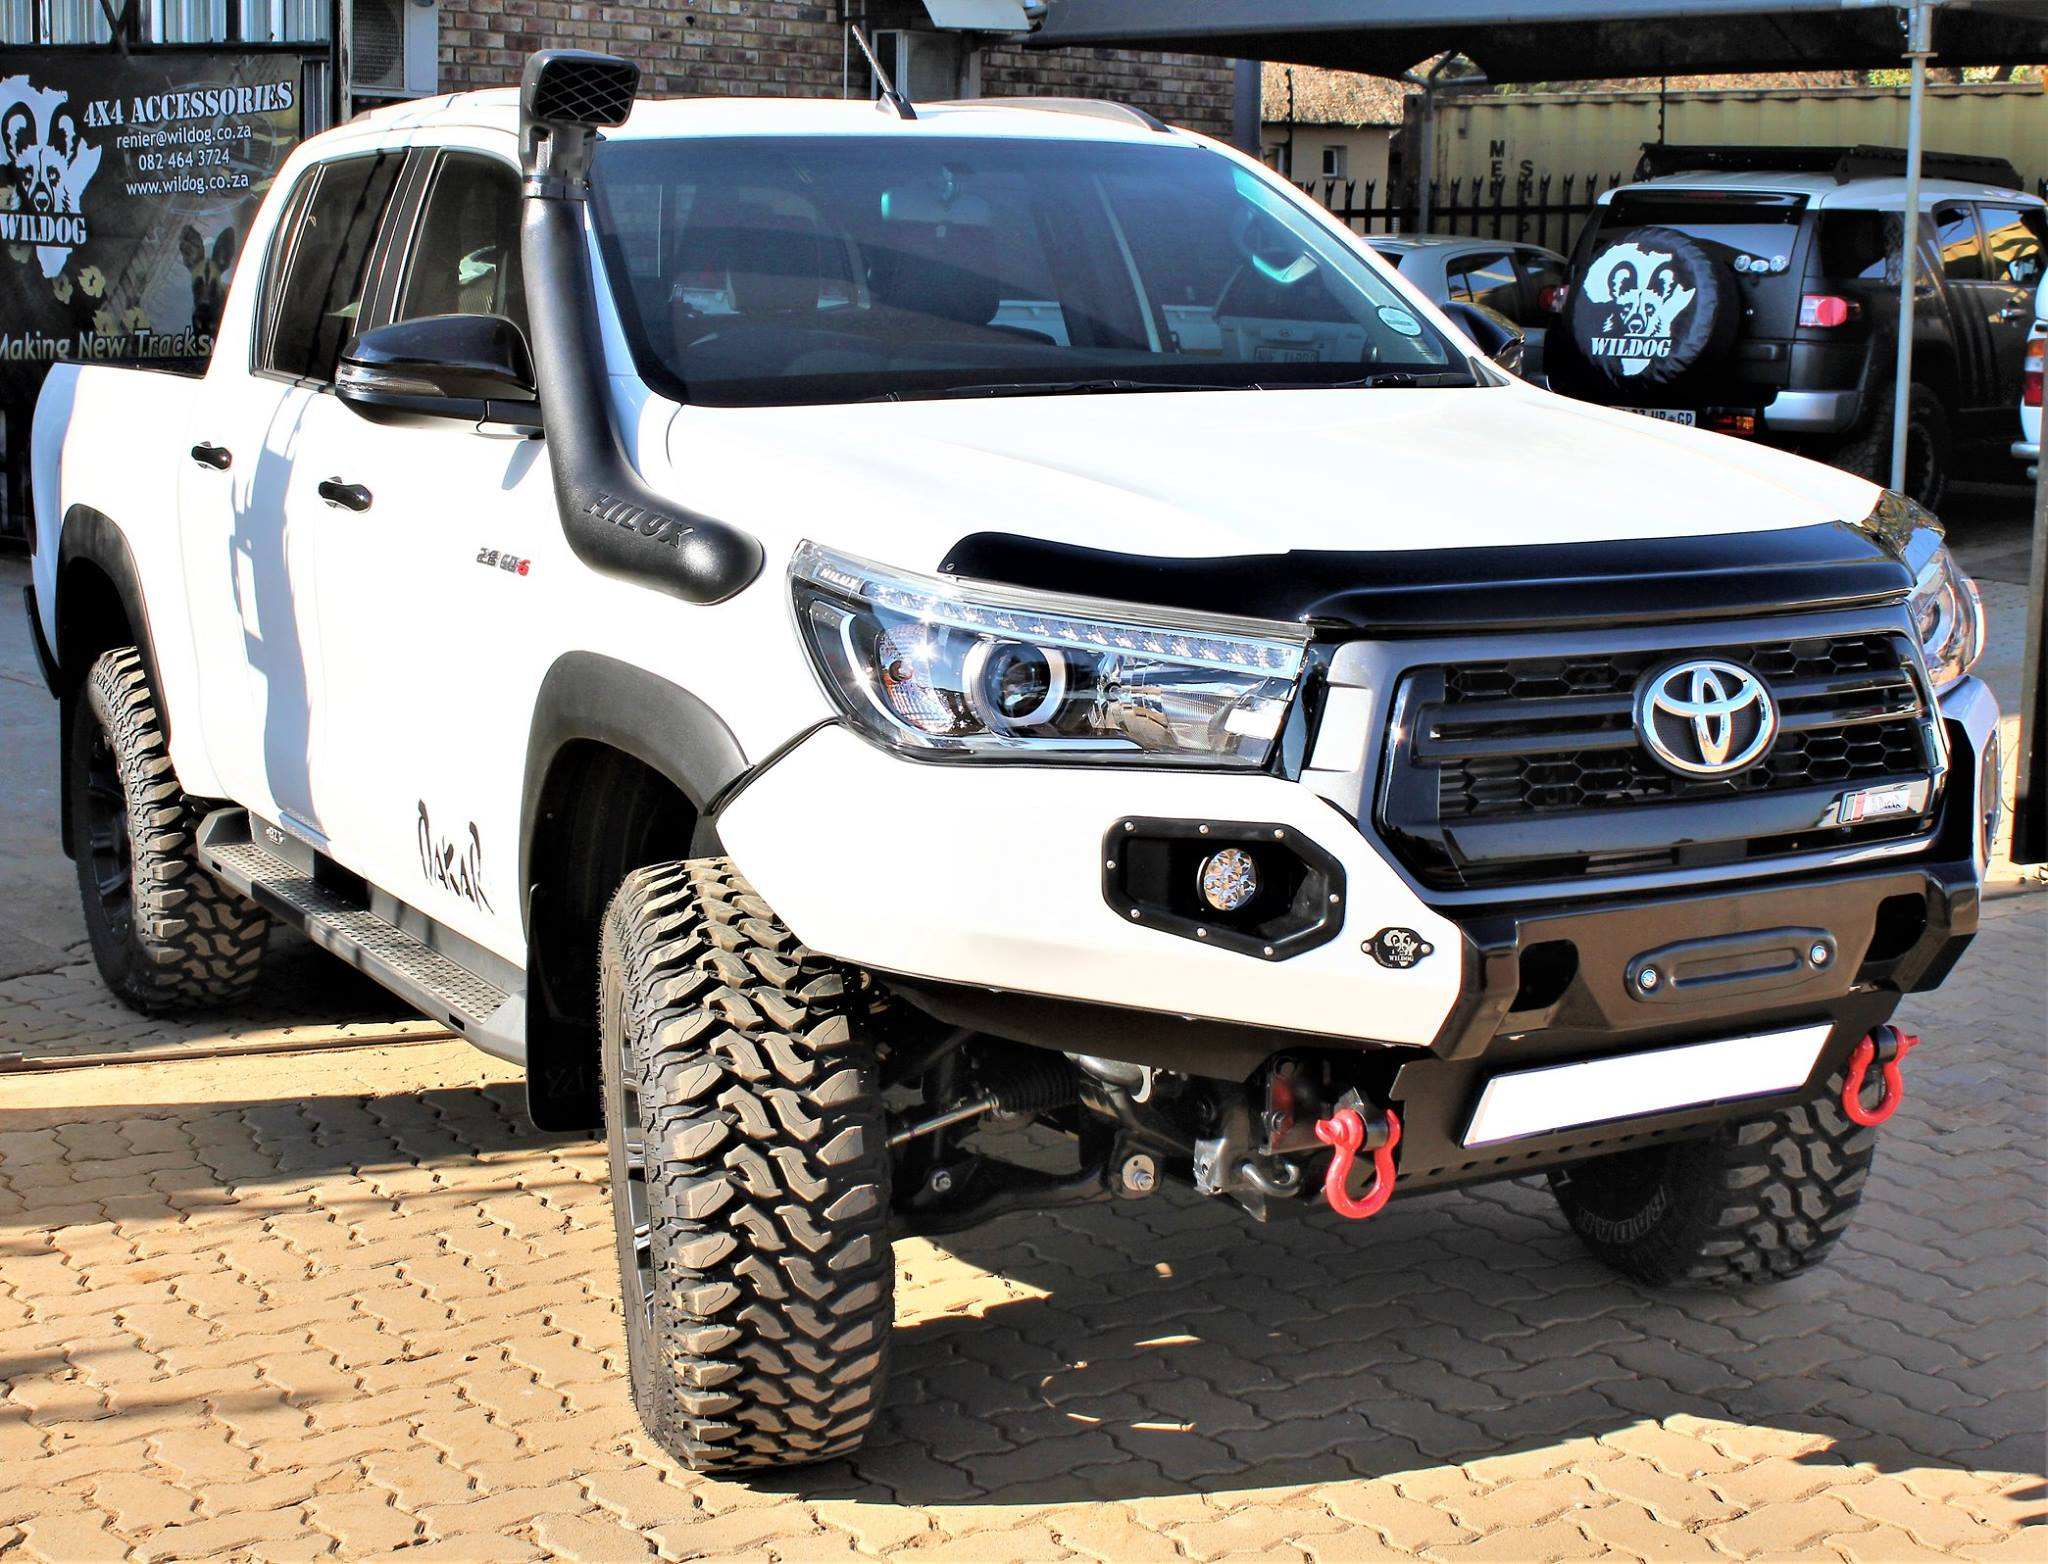 Wildog 4x4 Accessories Front Rear Replacement Bumpers Custom Design Pretoria Gauteng